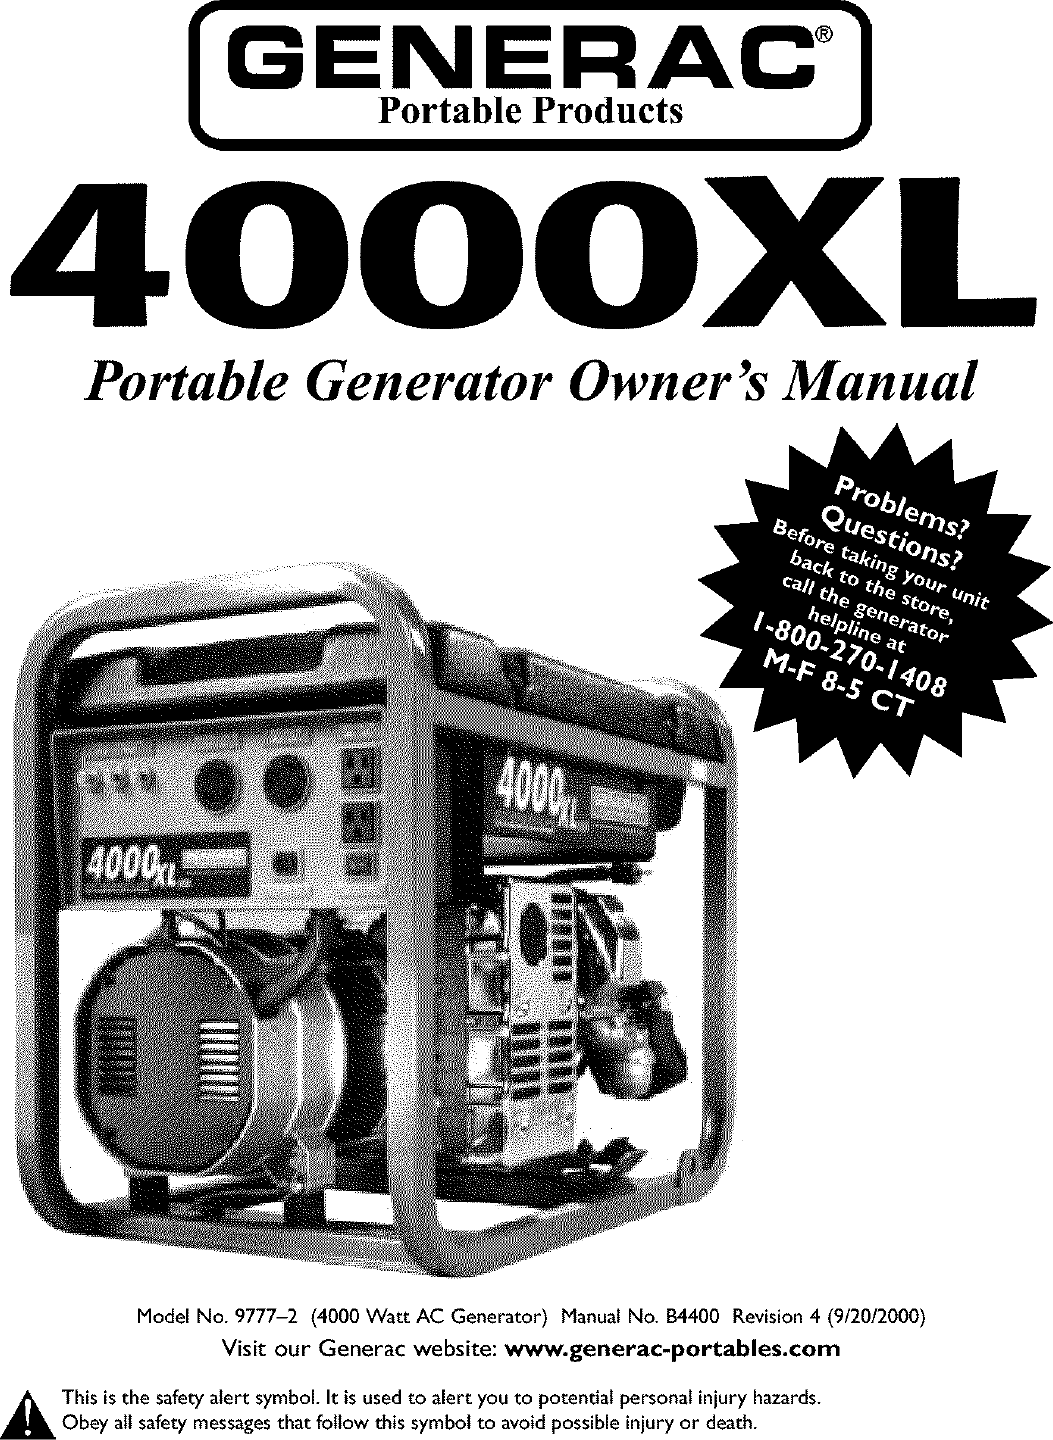 hight resolution of generac 4000xl 9777 2 owners manual manualslib makes it easy to find manuals online